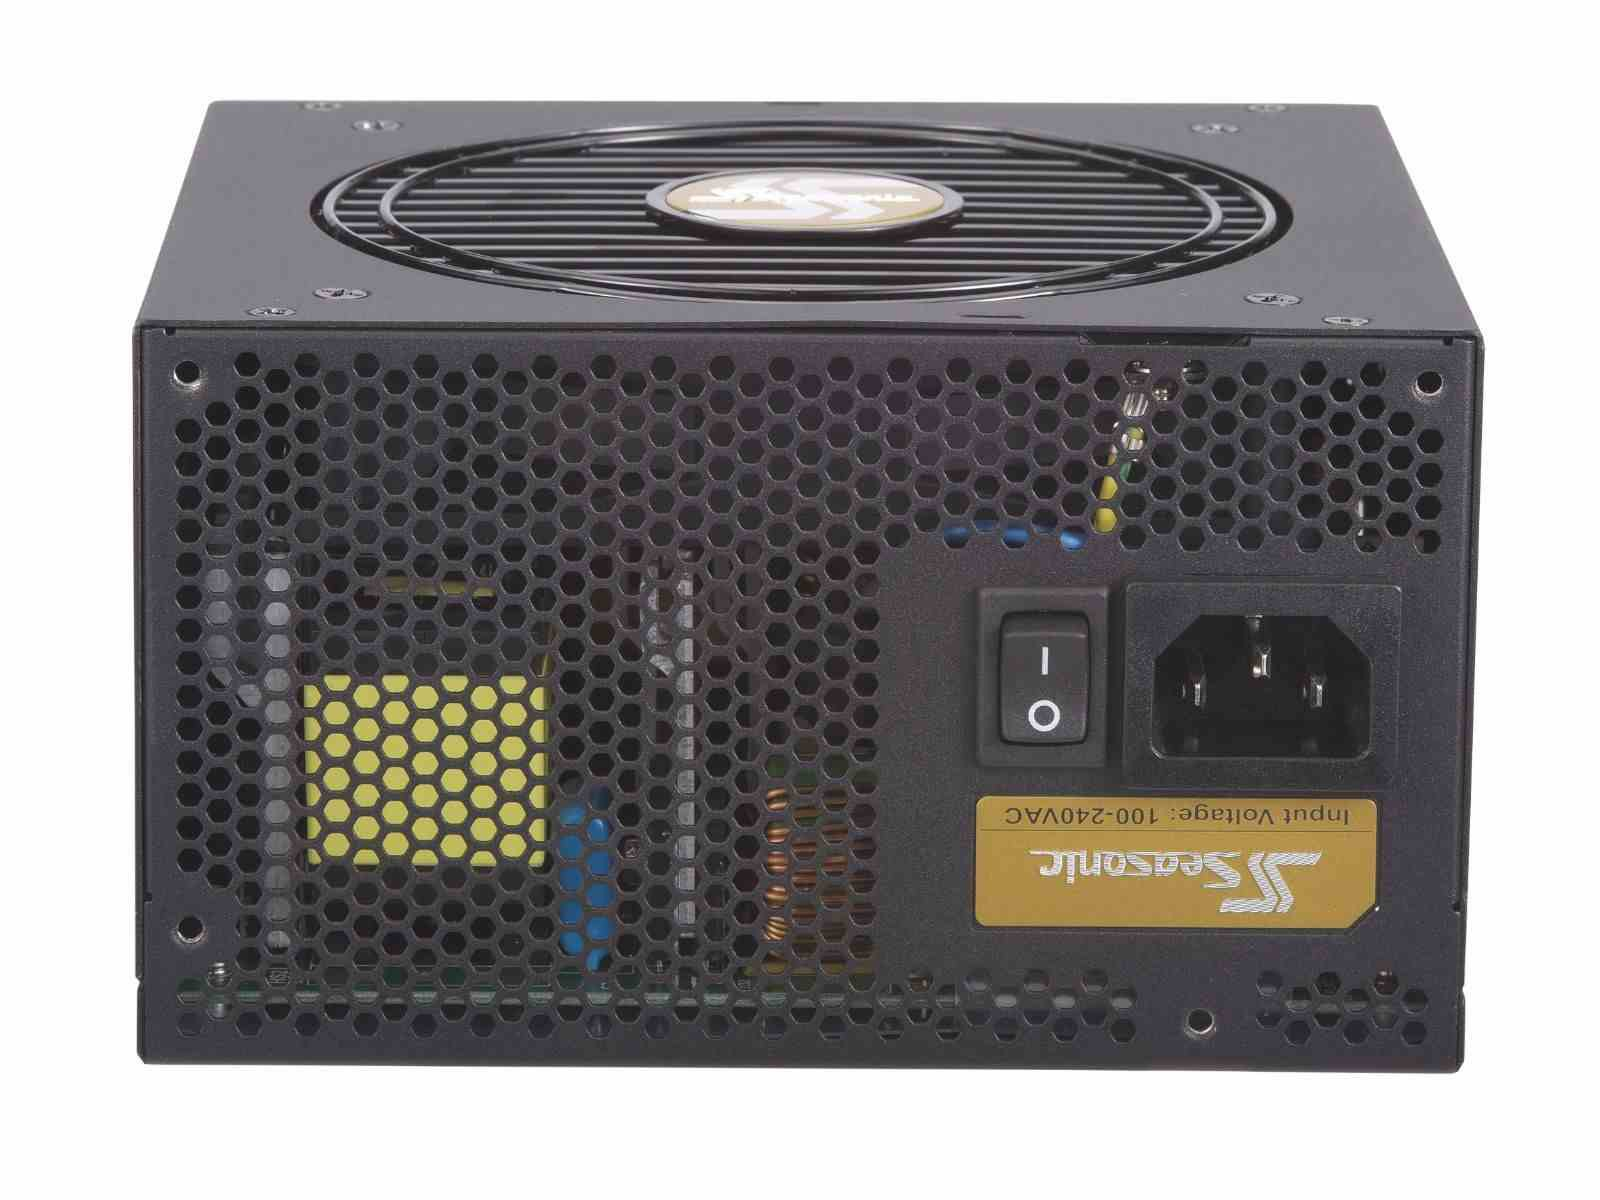 Блок питания 650W SeaSonic Focus Gold (SSR-650FM) (120мм, 24+8pin, 4x6/8pin, 3xMolex, 6xSATA, полумодульный, 80 PLUS Gold)